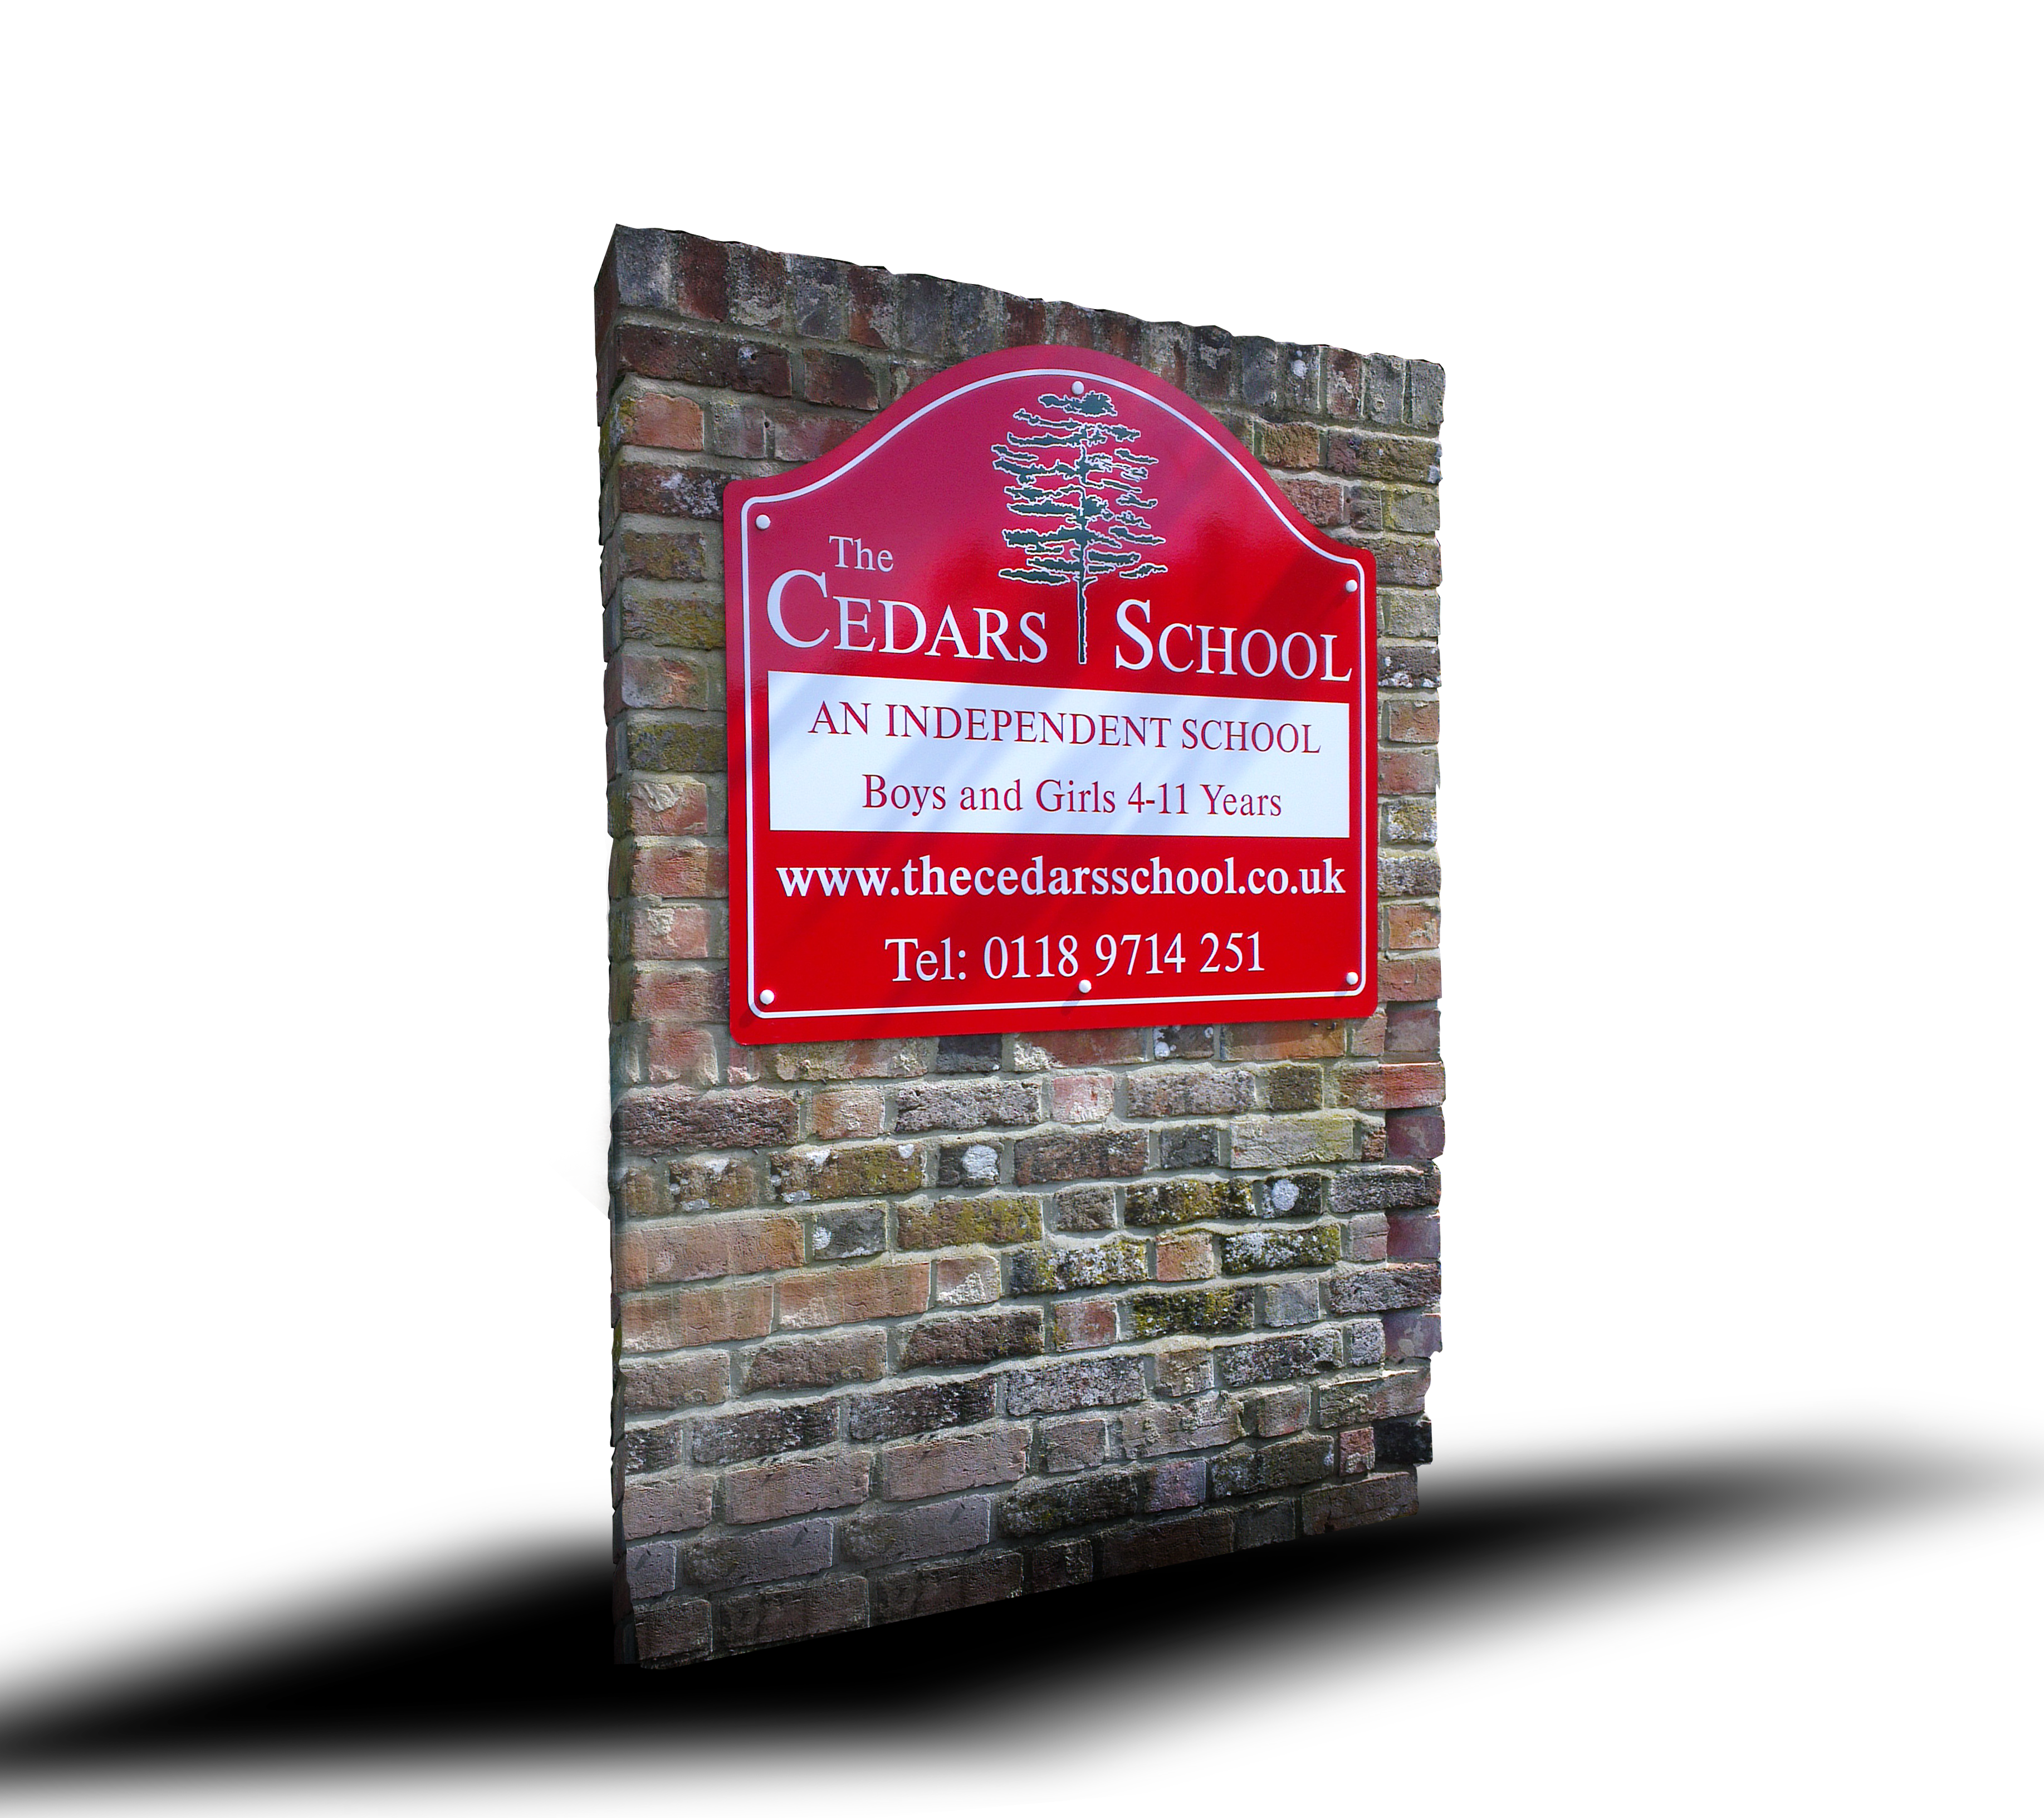 The Cedars School logo